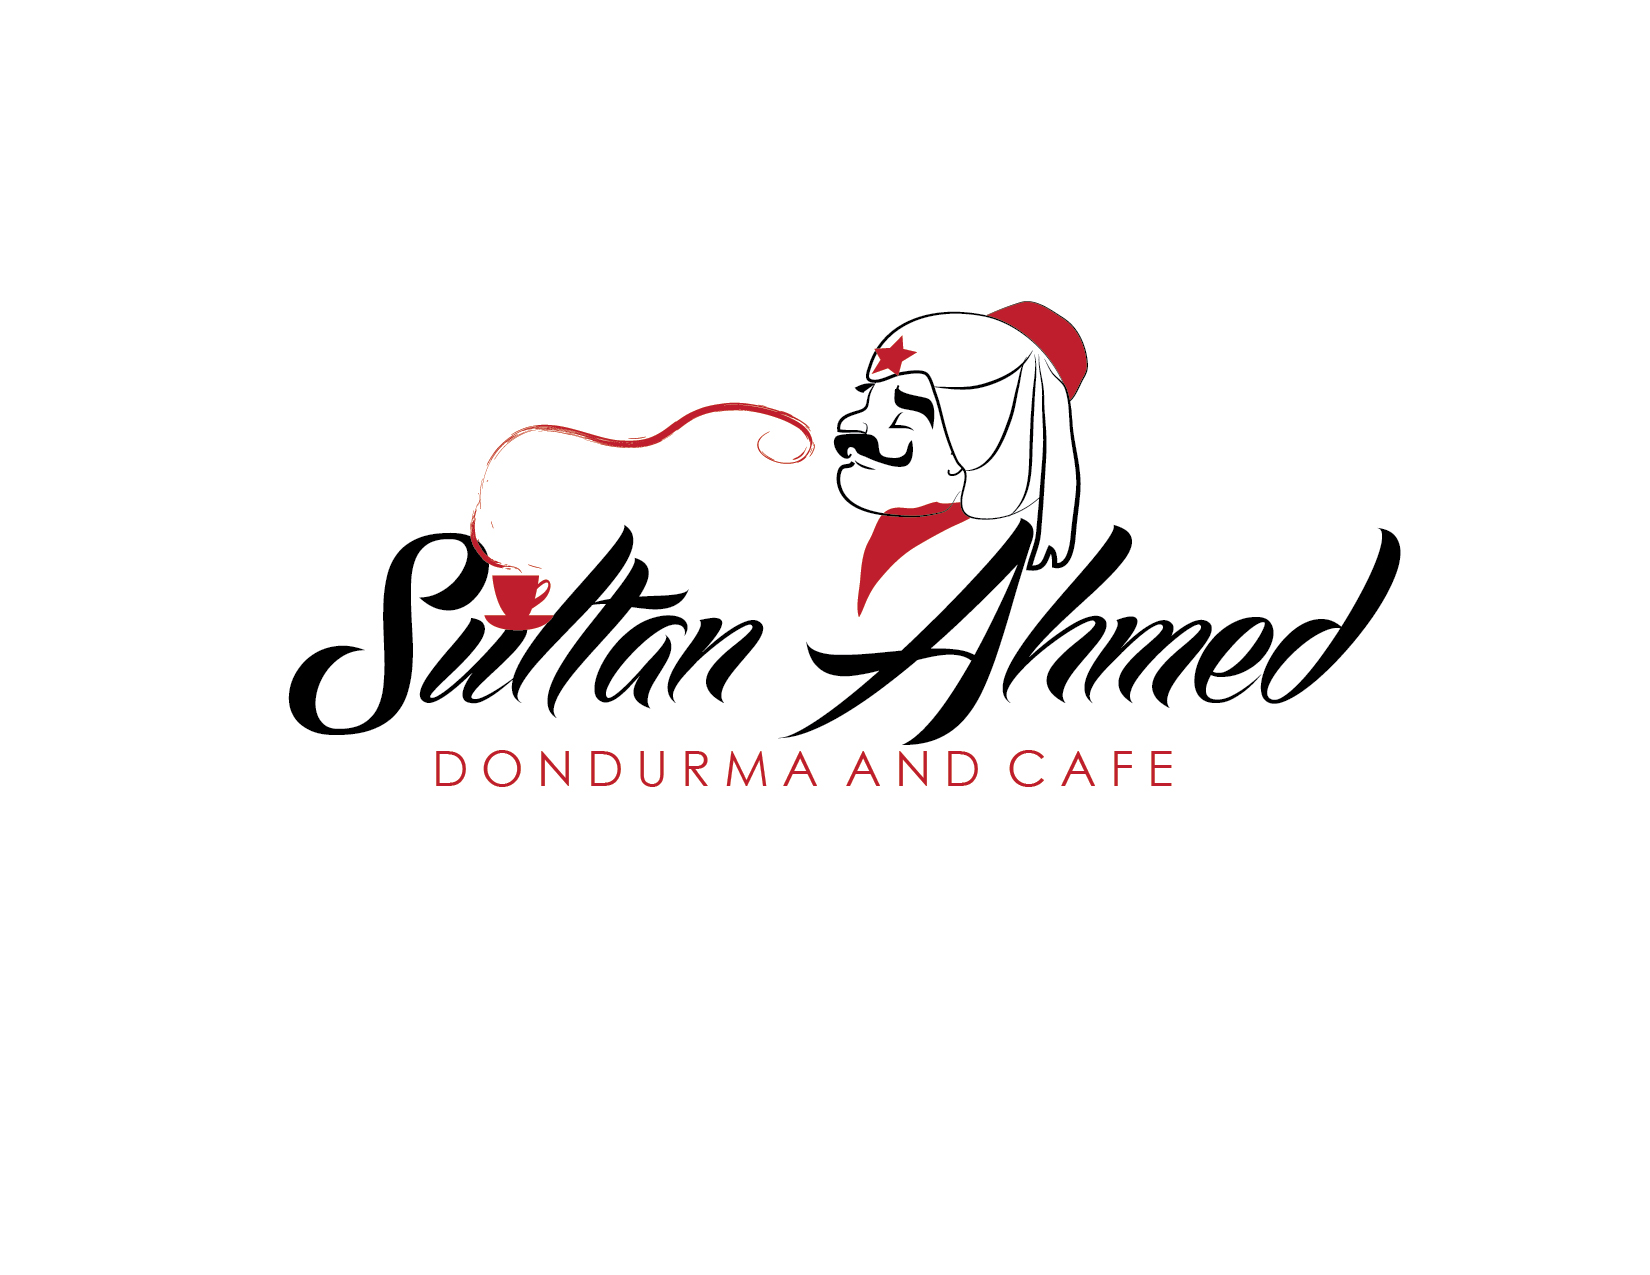 Logo Design by Milena Str - Entry No. 55 in the Logo Design Contest Unique Logo Design Wanted for Sultan Ahmed Dondurma and Cafe.